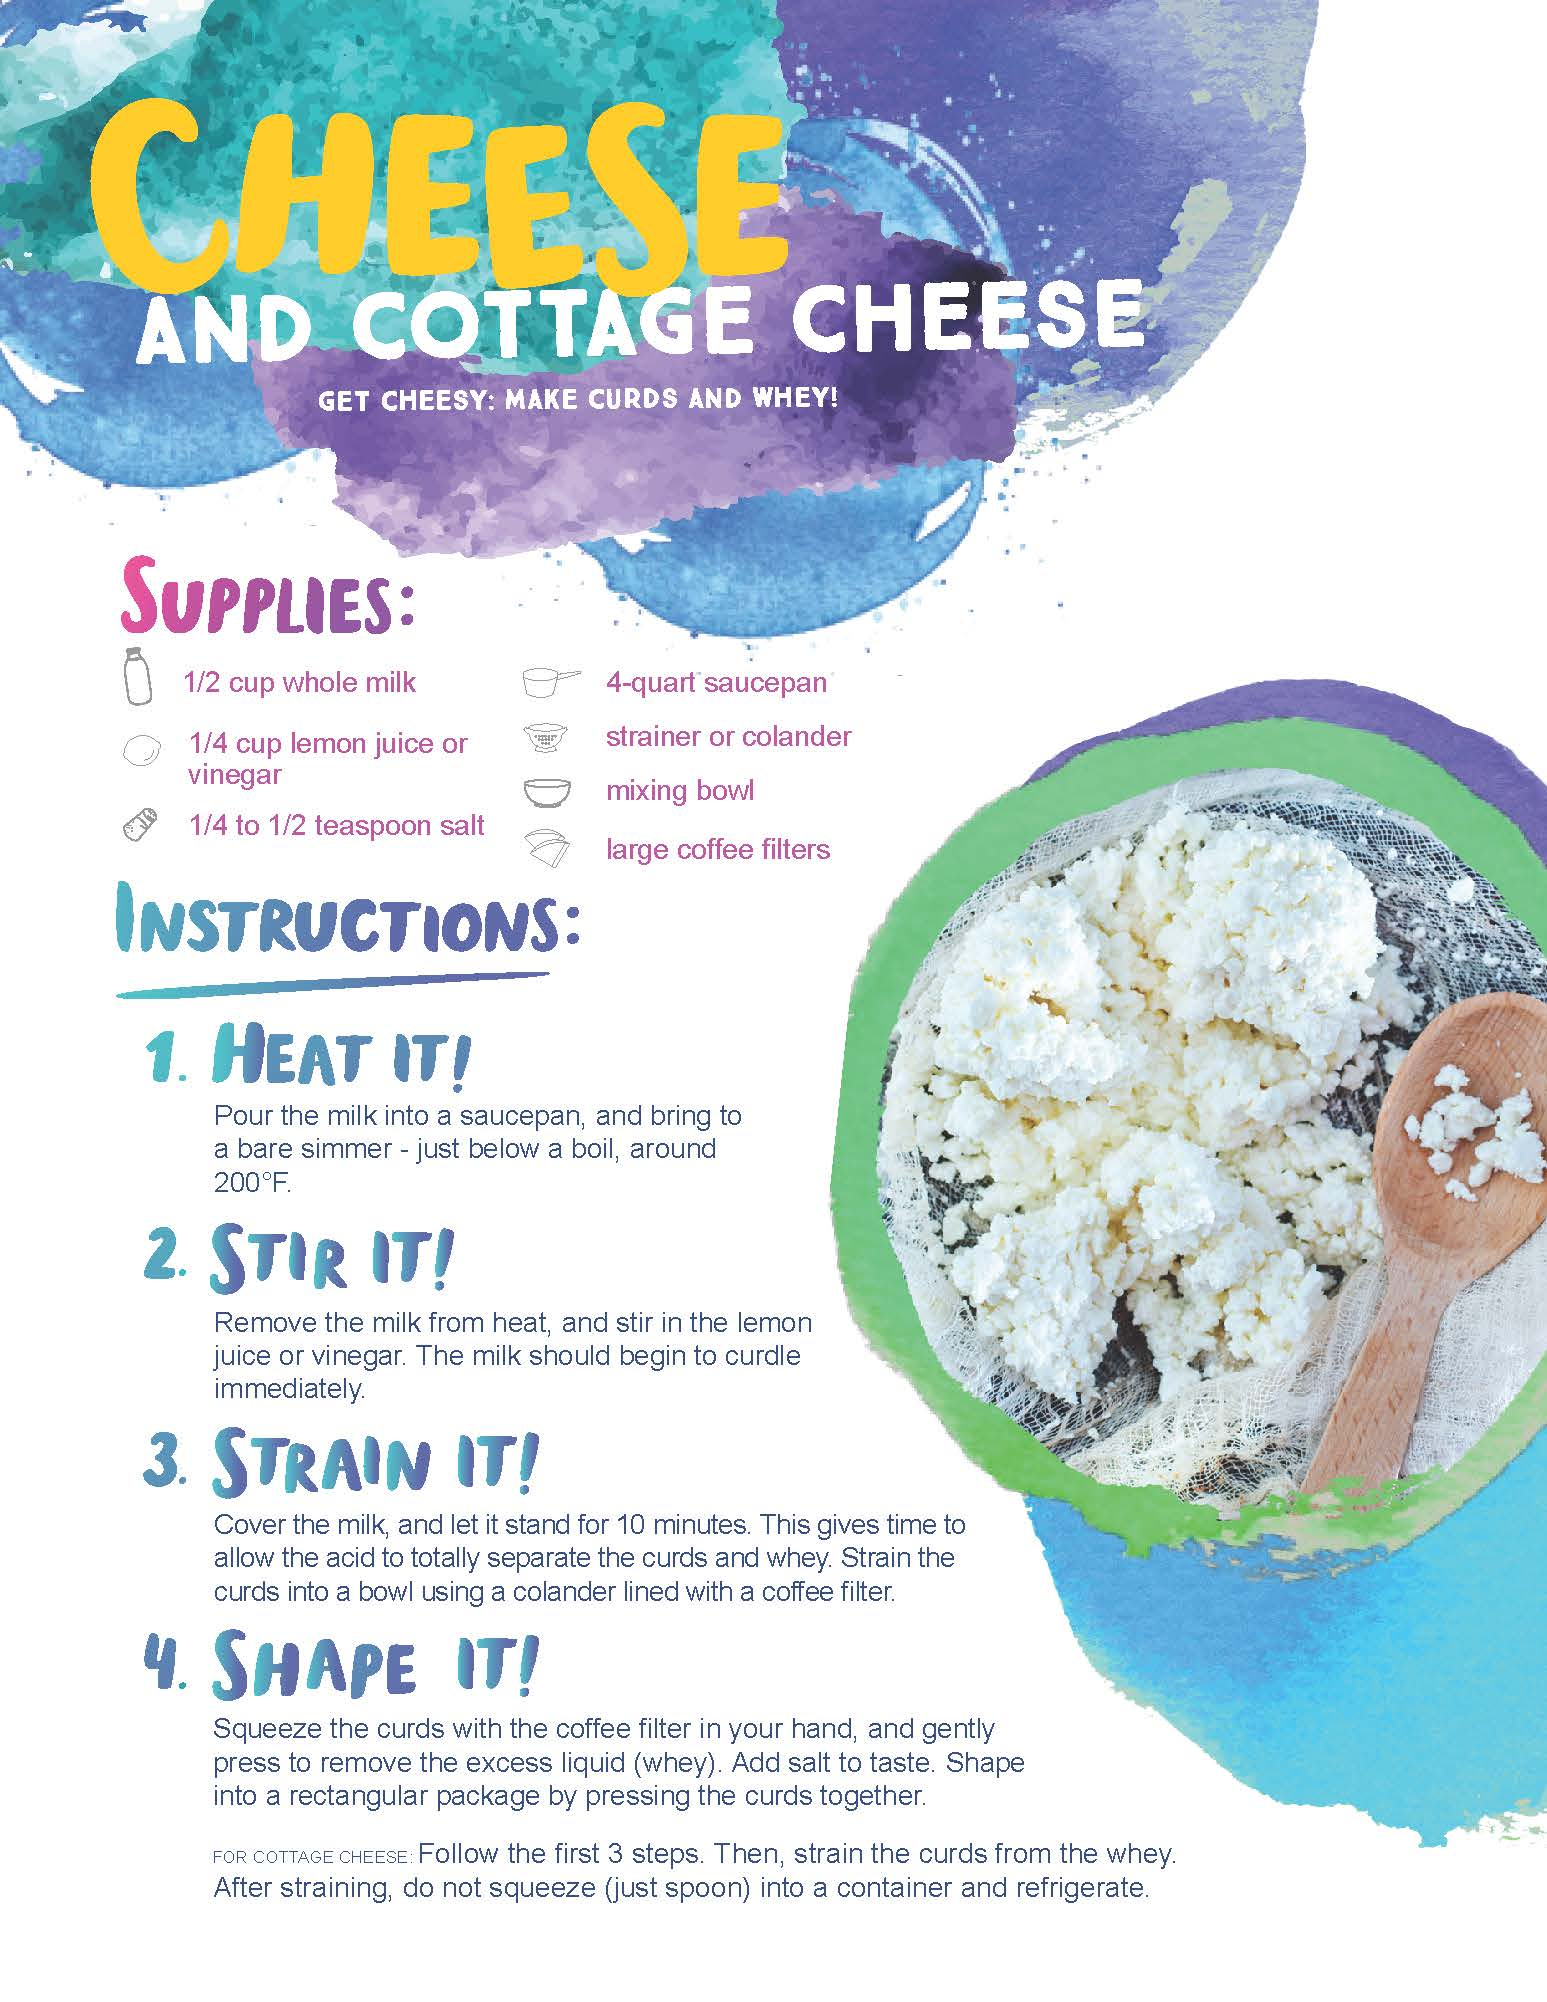 How to Make Cheese and Cottage Cheese image